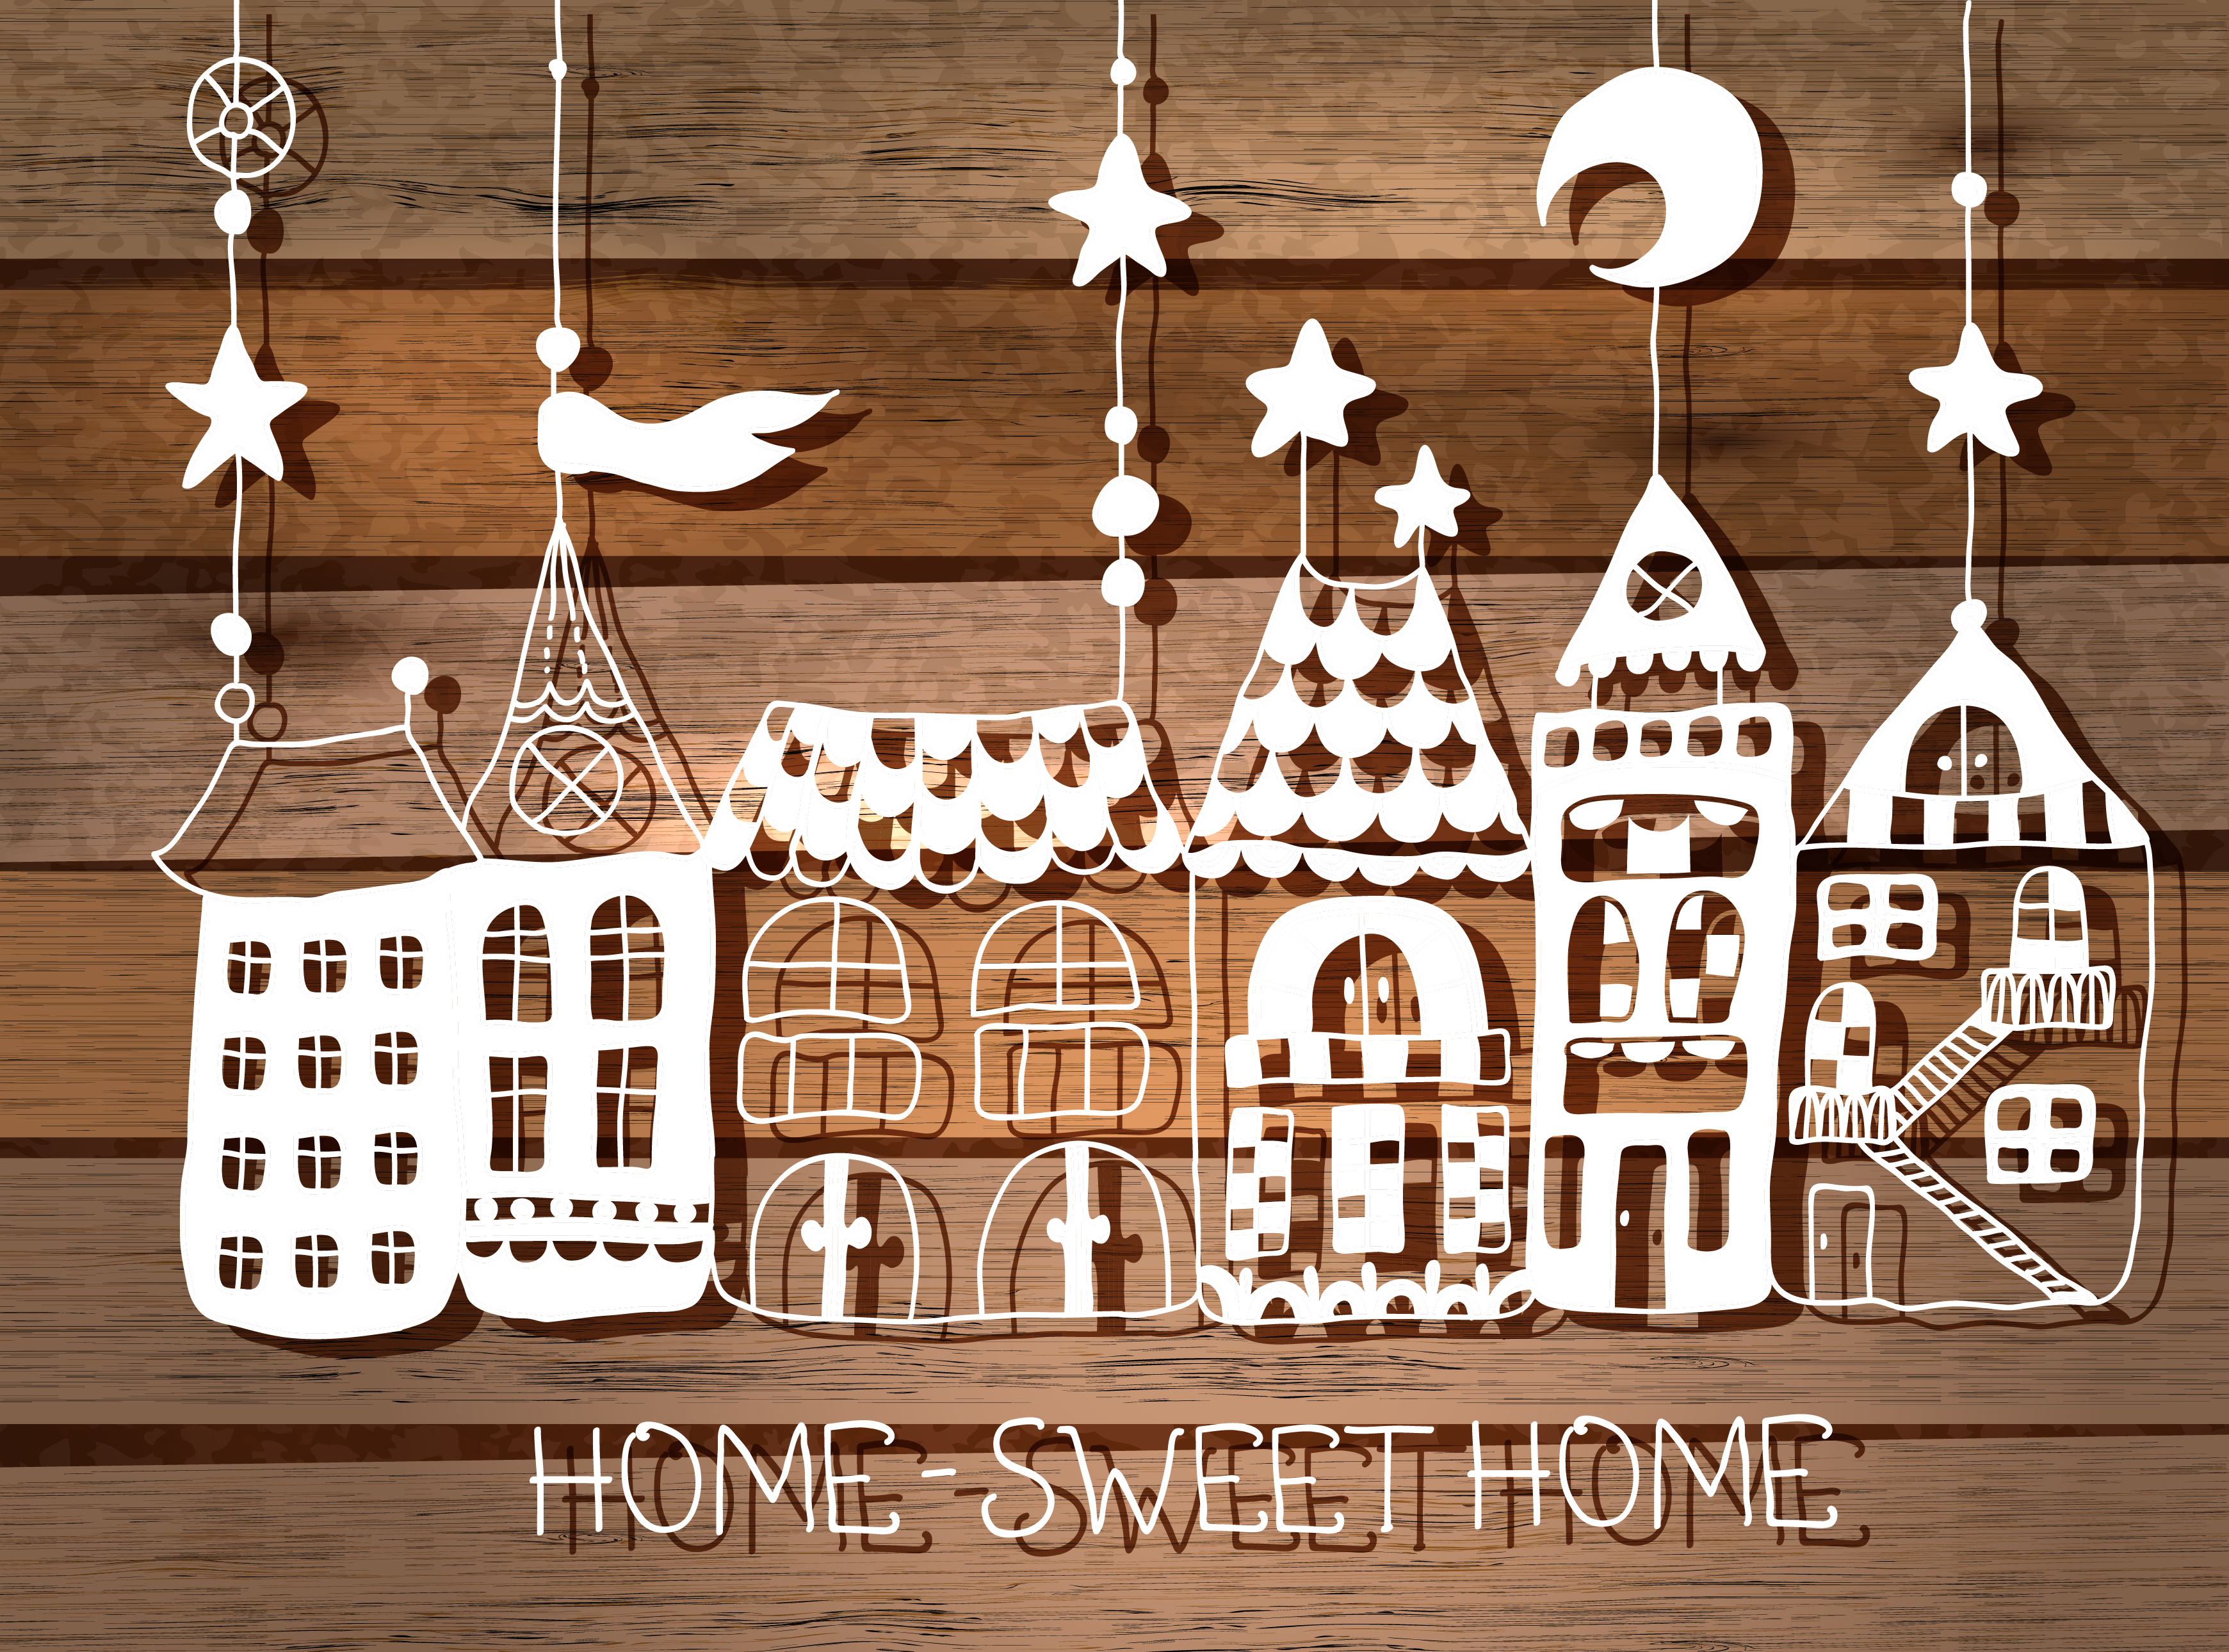 Nice wallpapers Home Sweet Home 3481x2580px